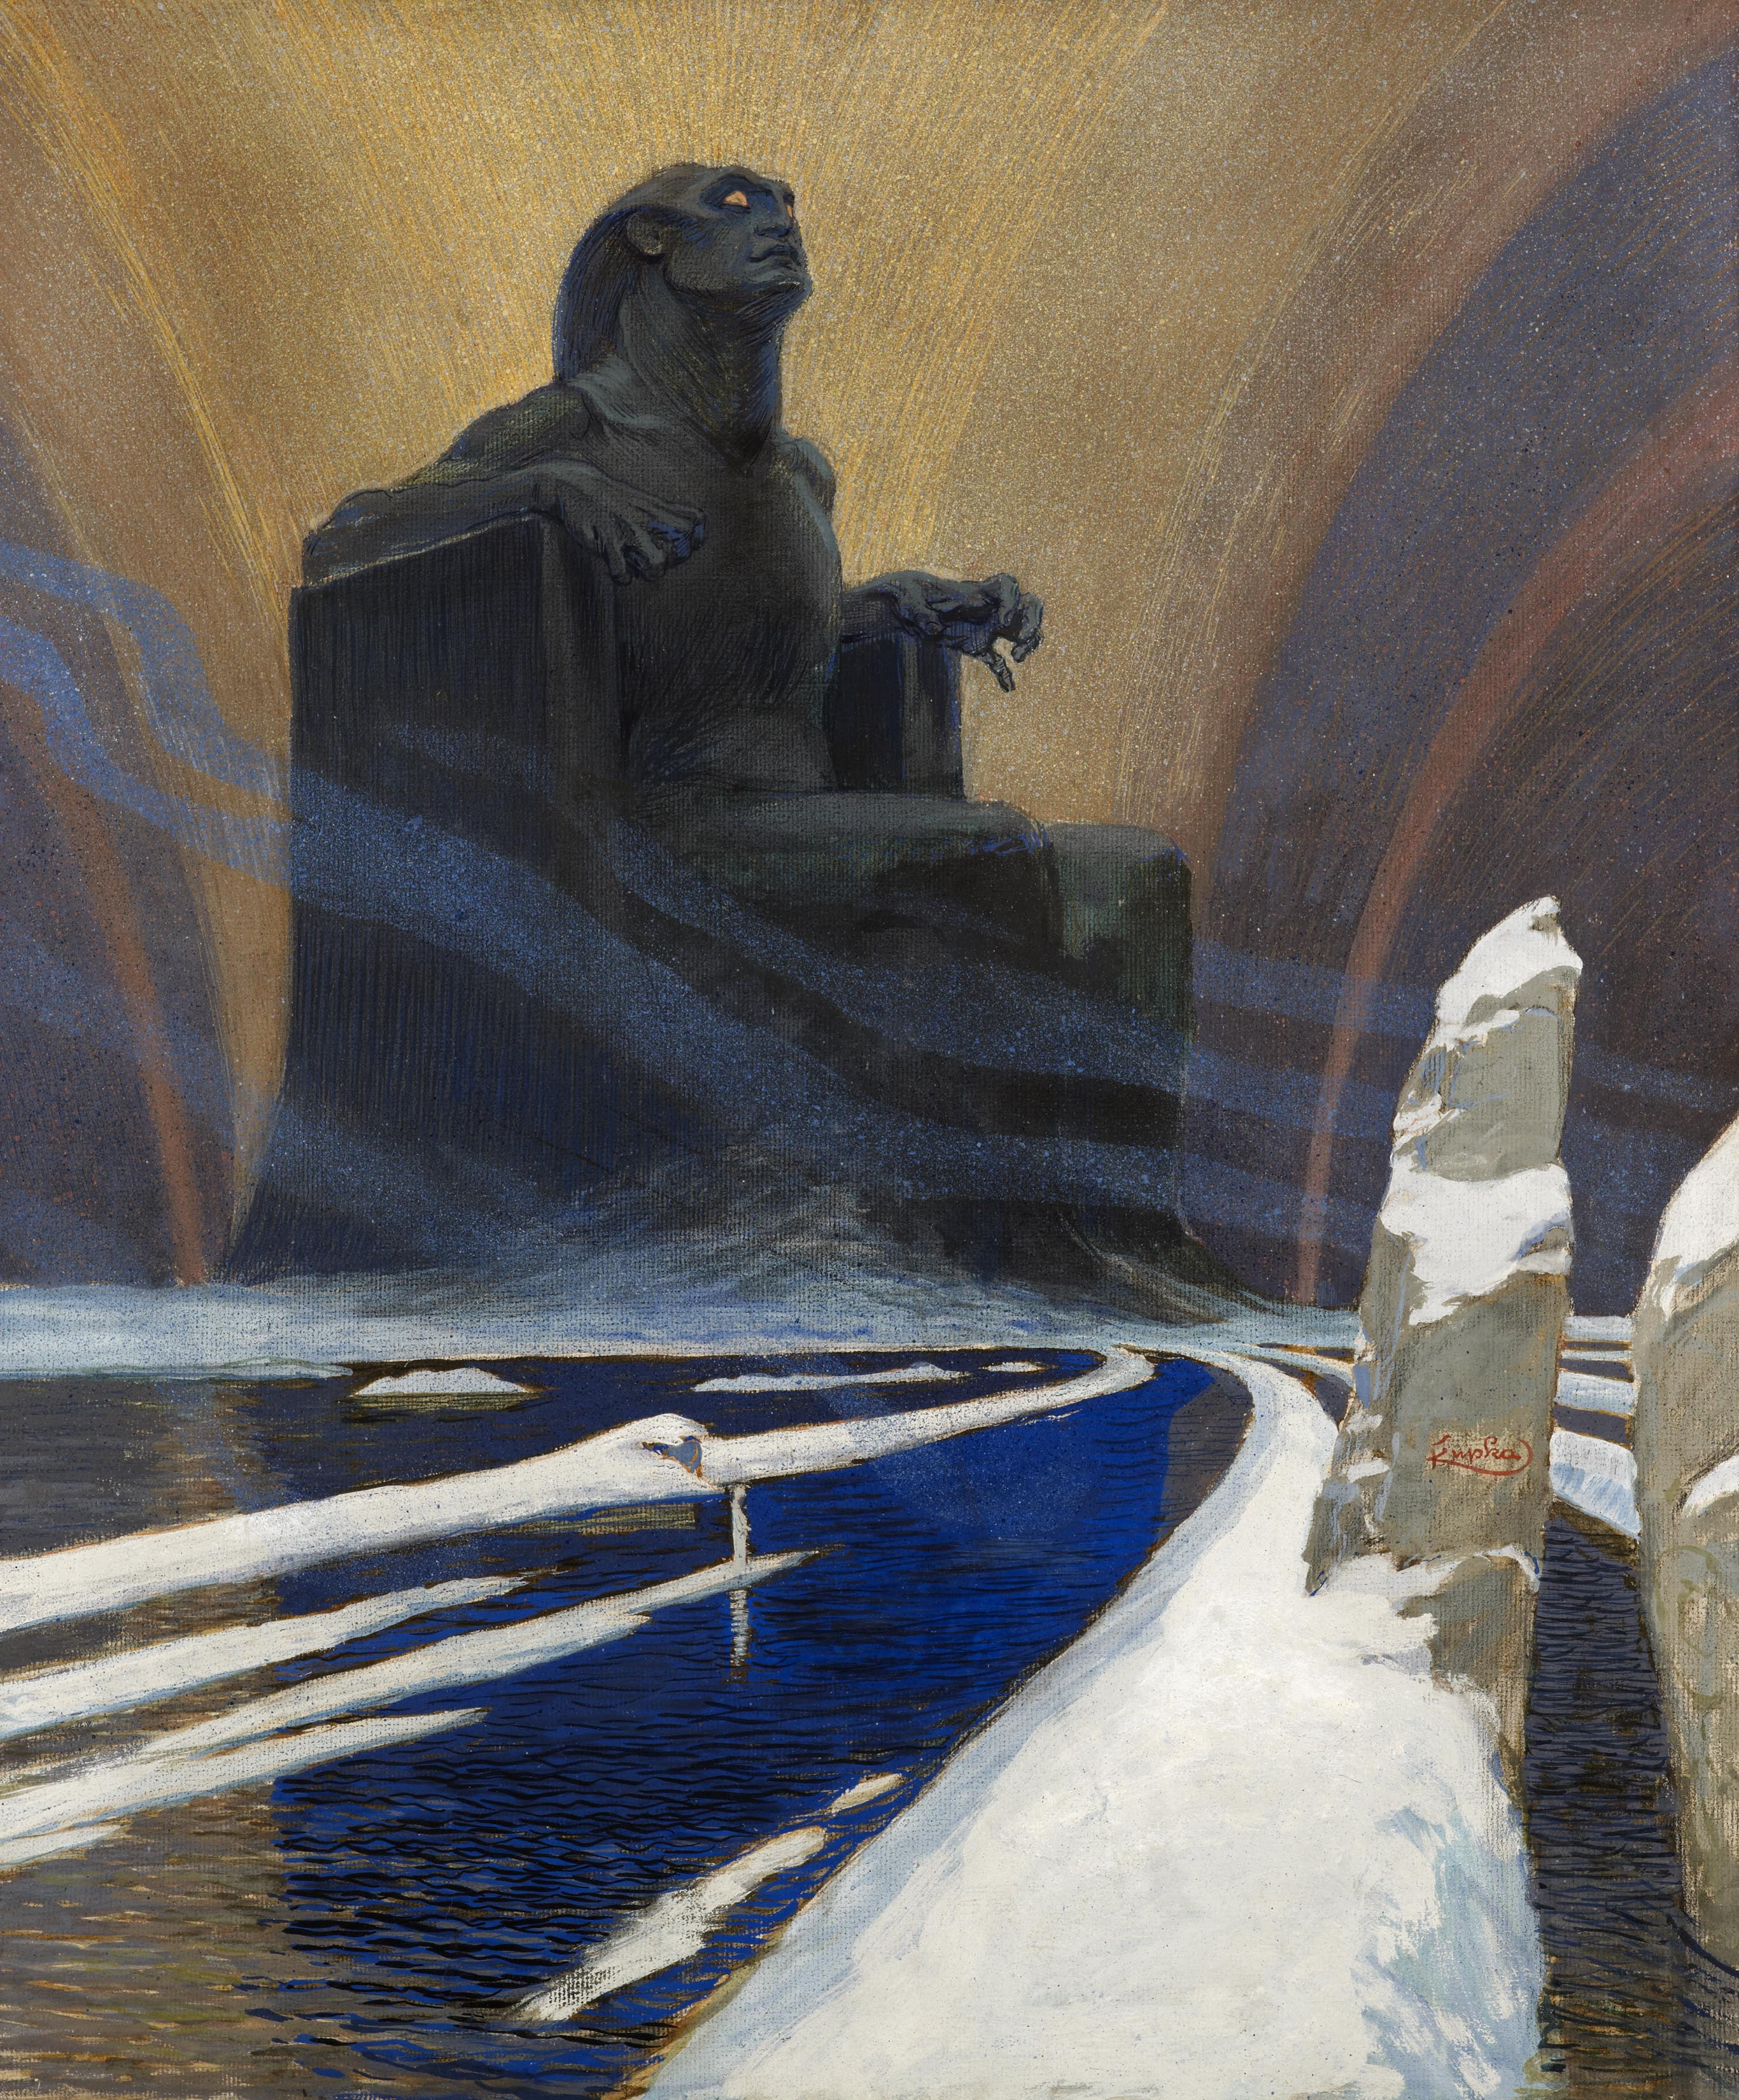 Frantisek Kupka (1871-1957), Black Idol or Defiance